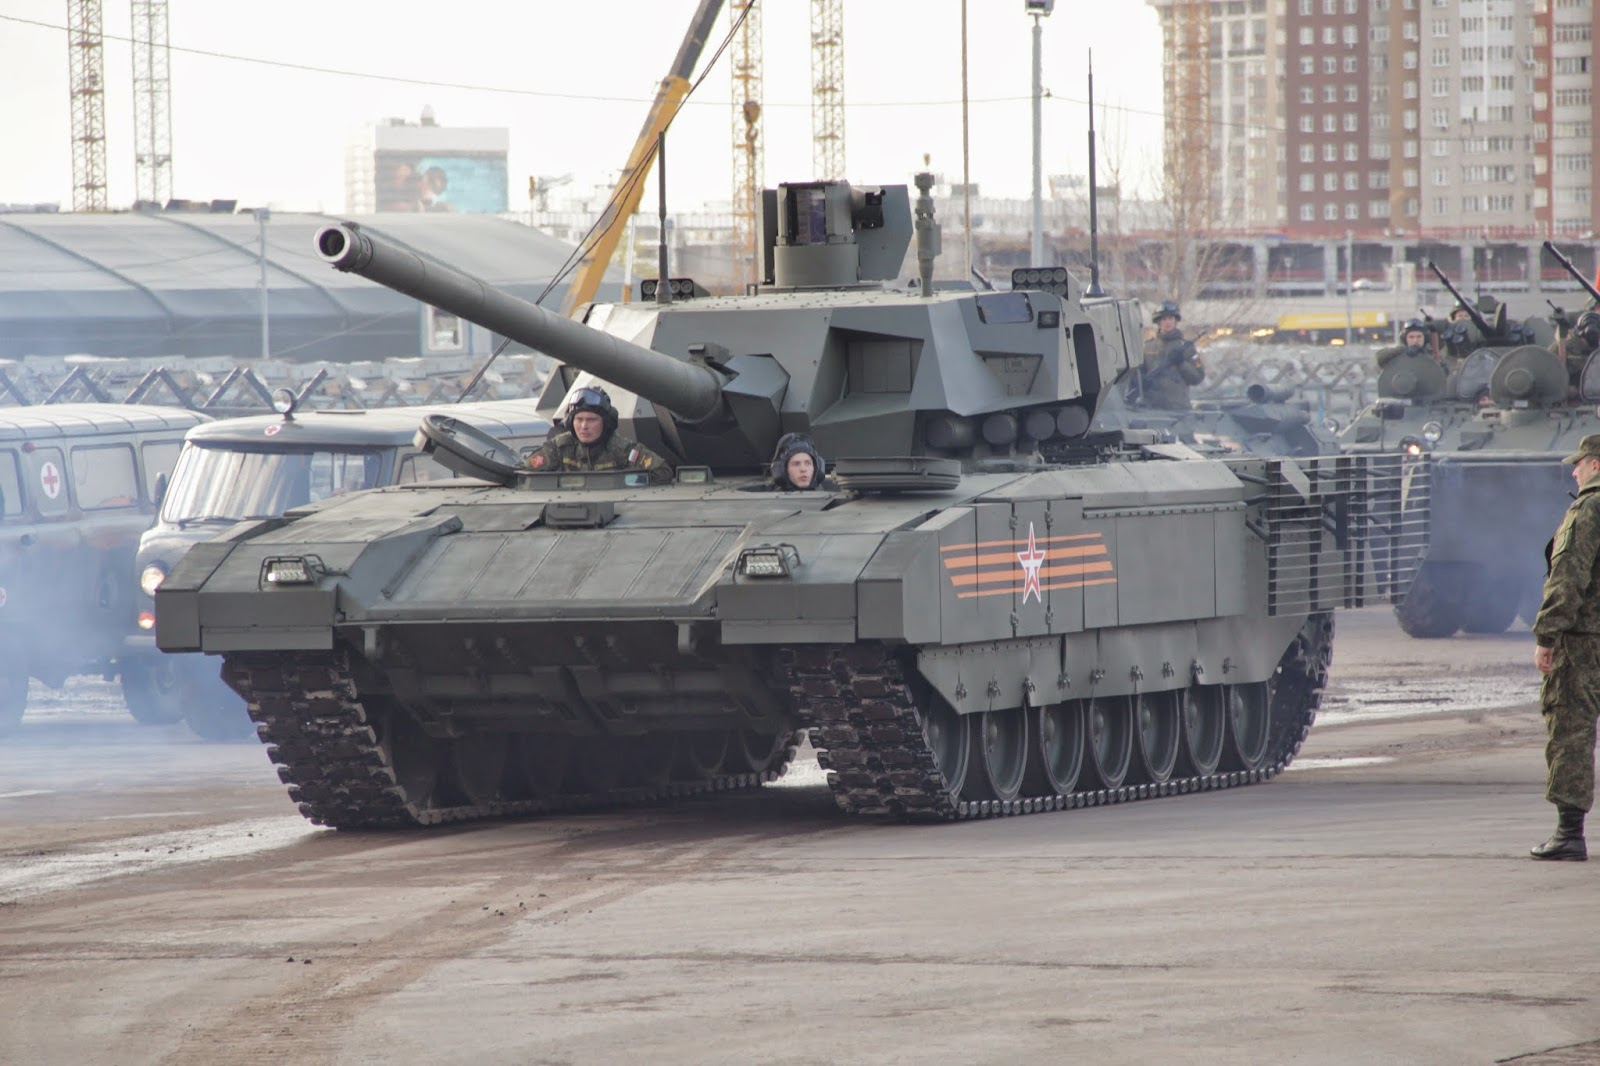 [Official] Armata Discussion thread #2 - Page 32 0_d2203_364f1442_orig